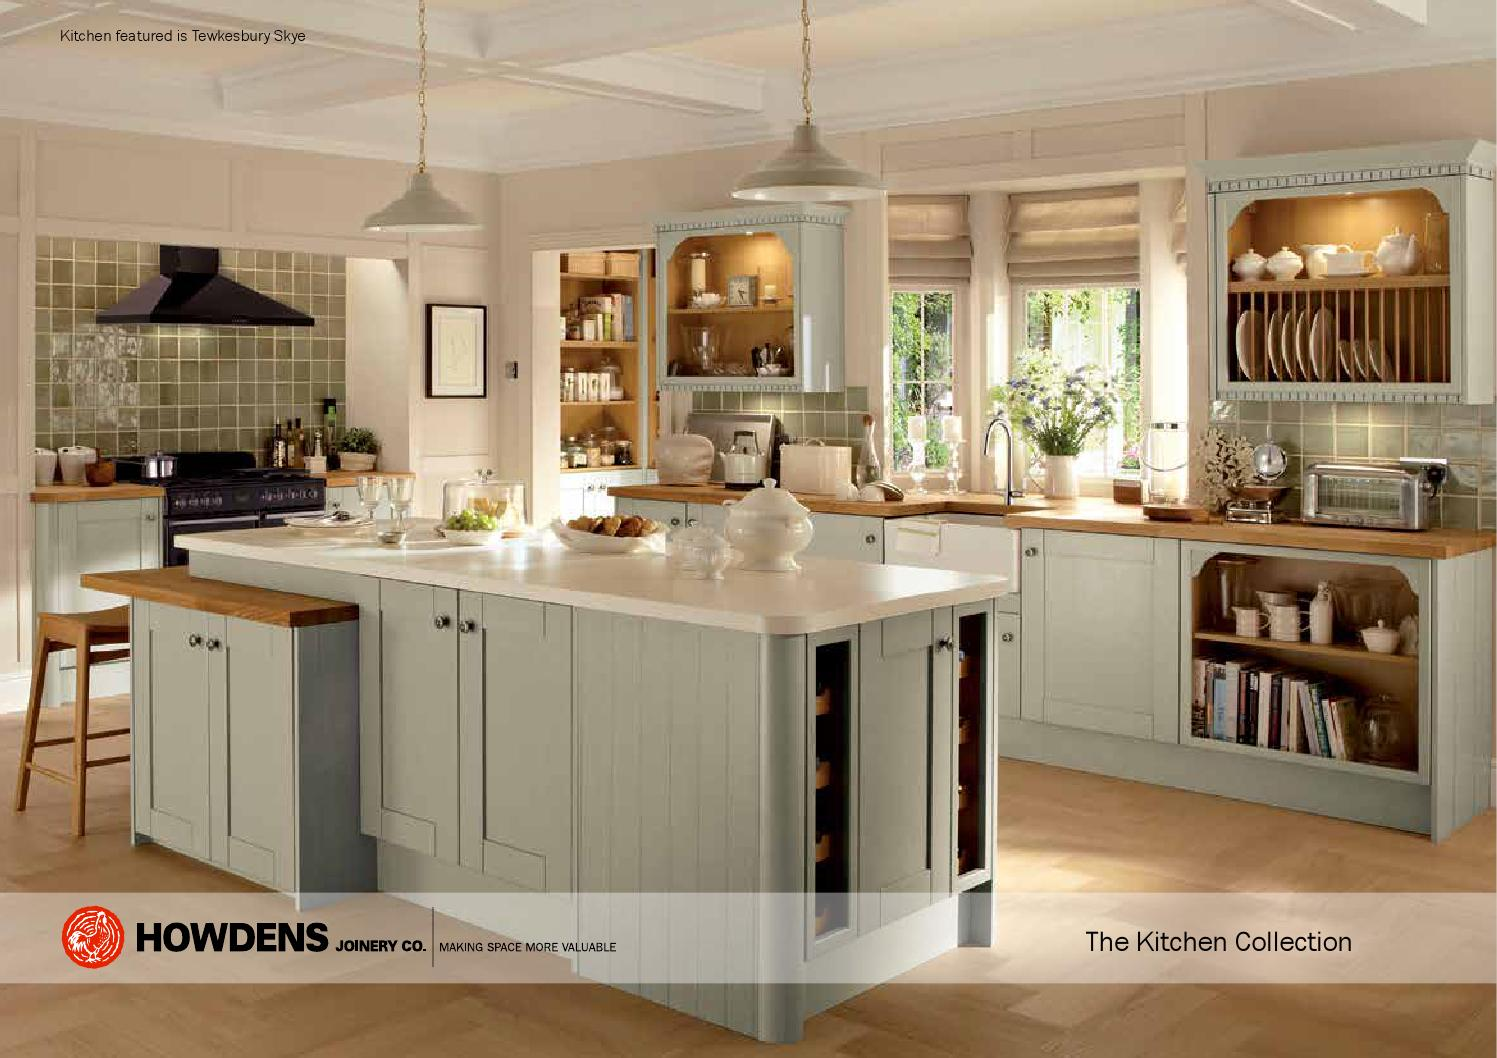 Kitchen collection brochure by jskproperty issuu Howdens kitchen design reviews